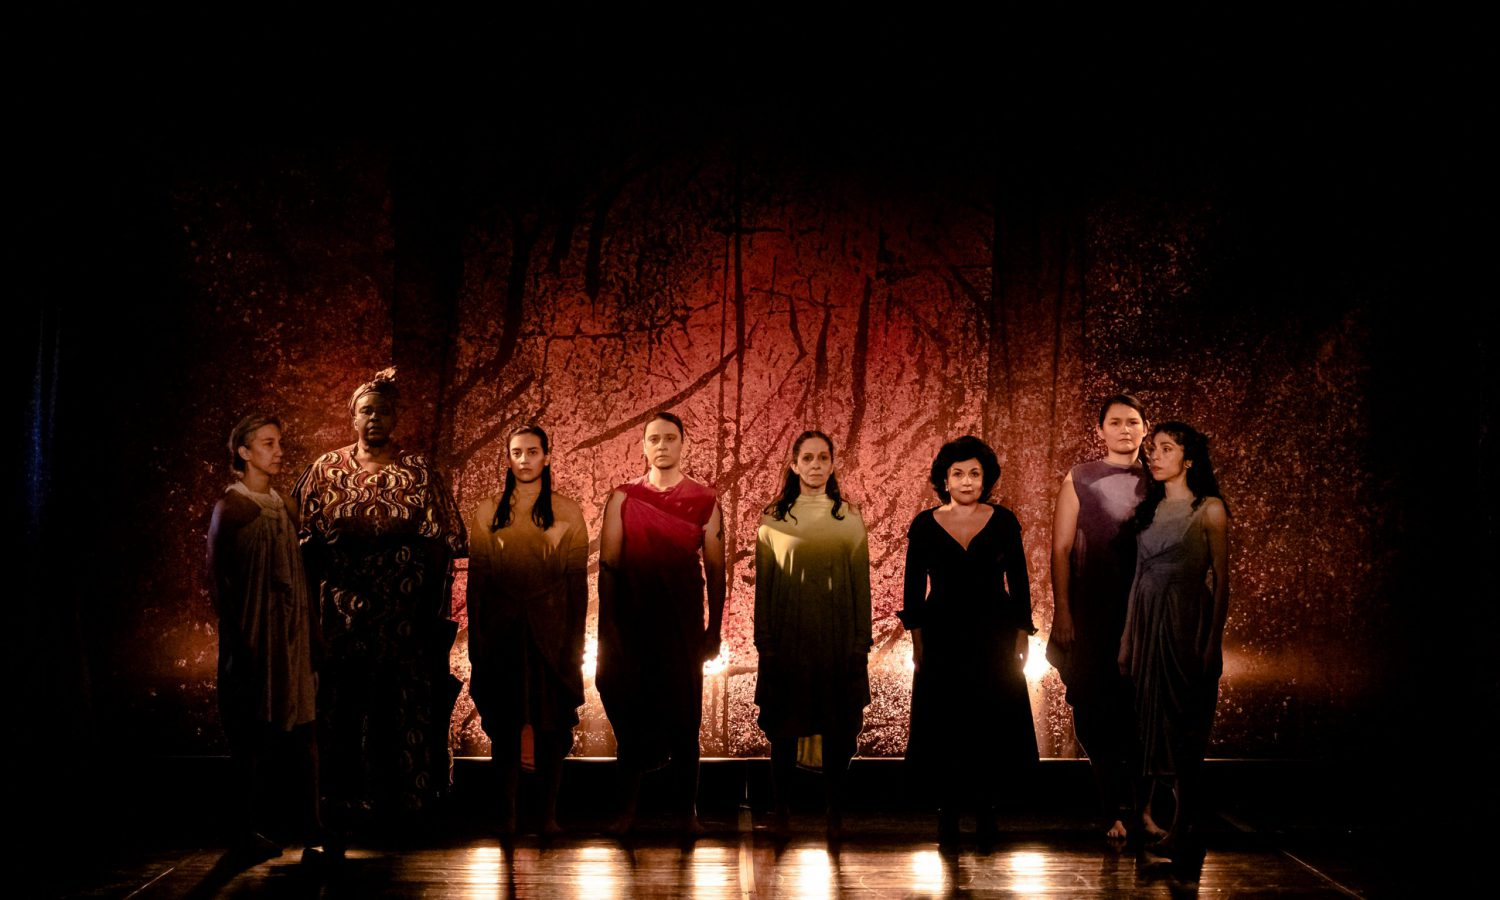 Eight women stand in front of a red backdrop. Stage photo.